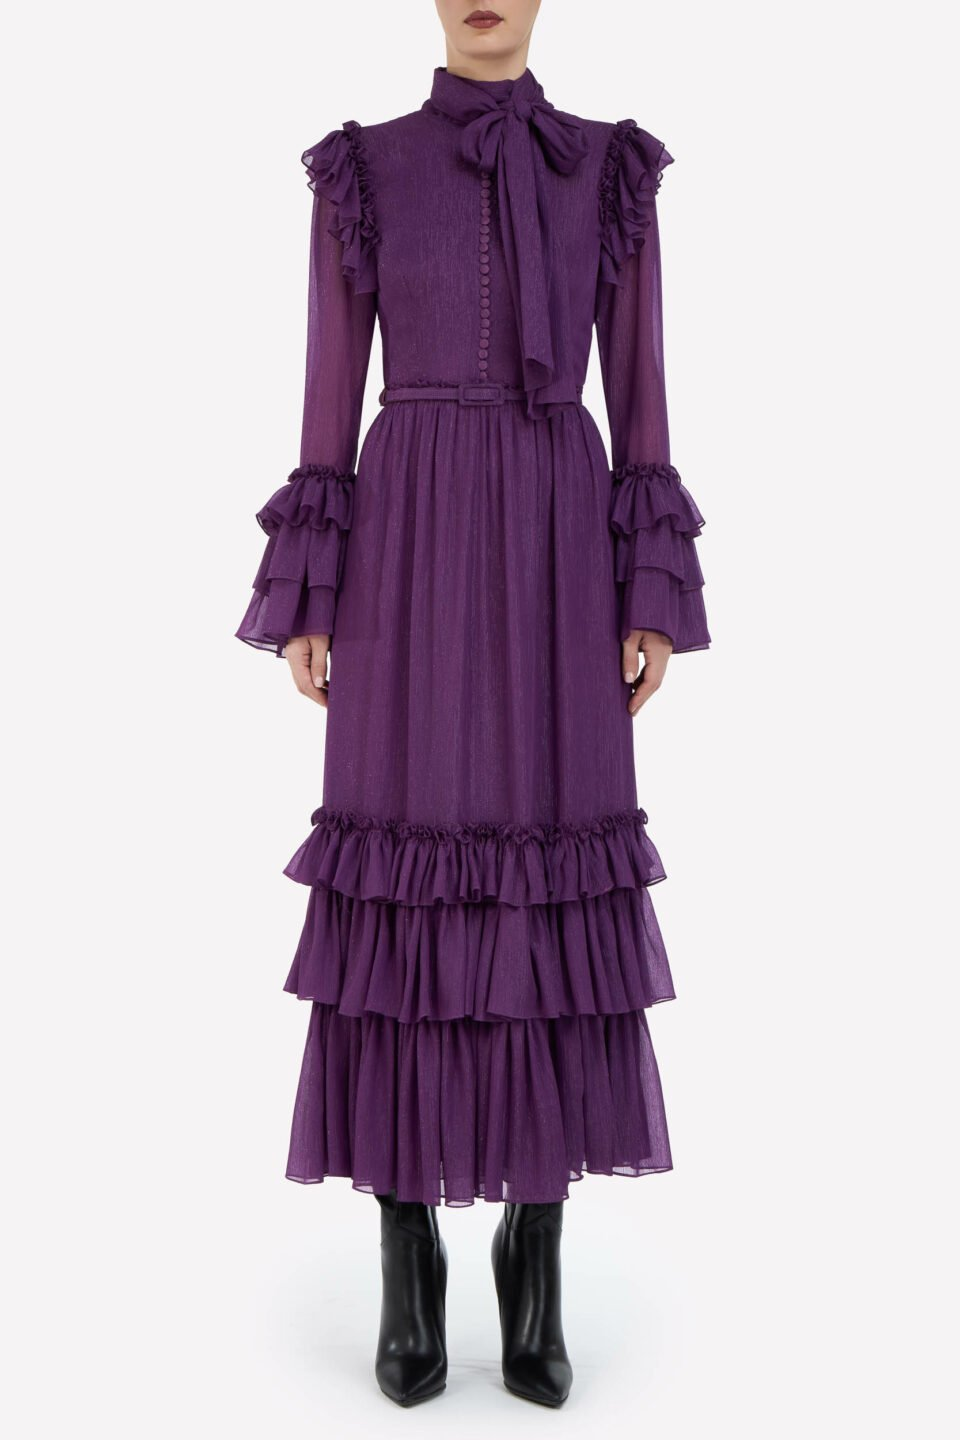 Natalie FW2132 Purple Lurex Crinkle Chiffon Tiered PussybowDress with Buttons, Ruffle Details & Coordinating Belt